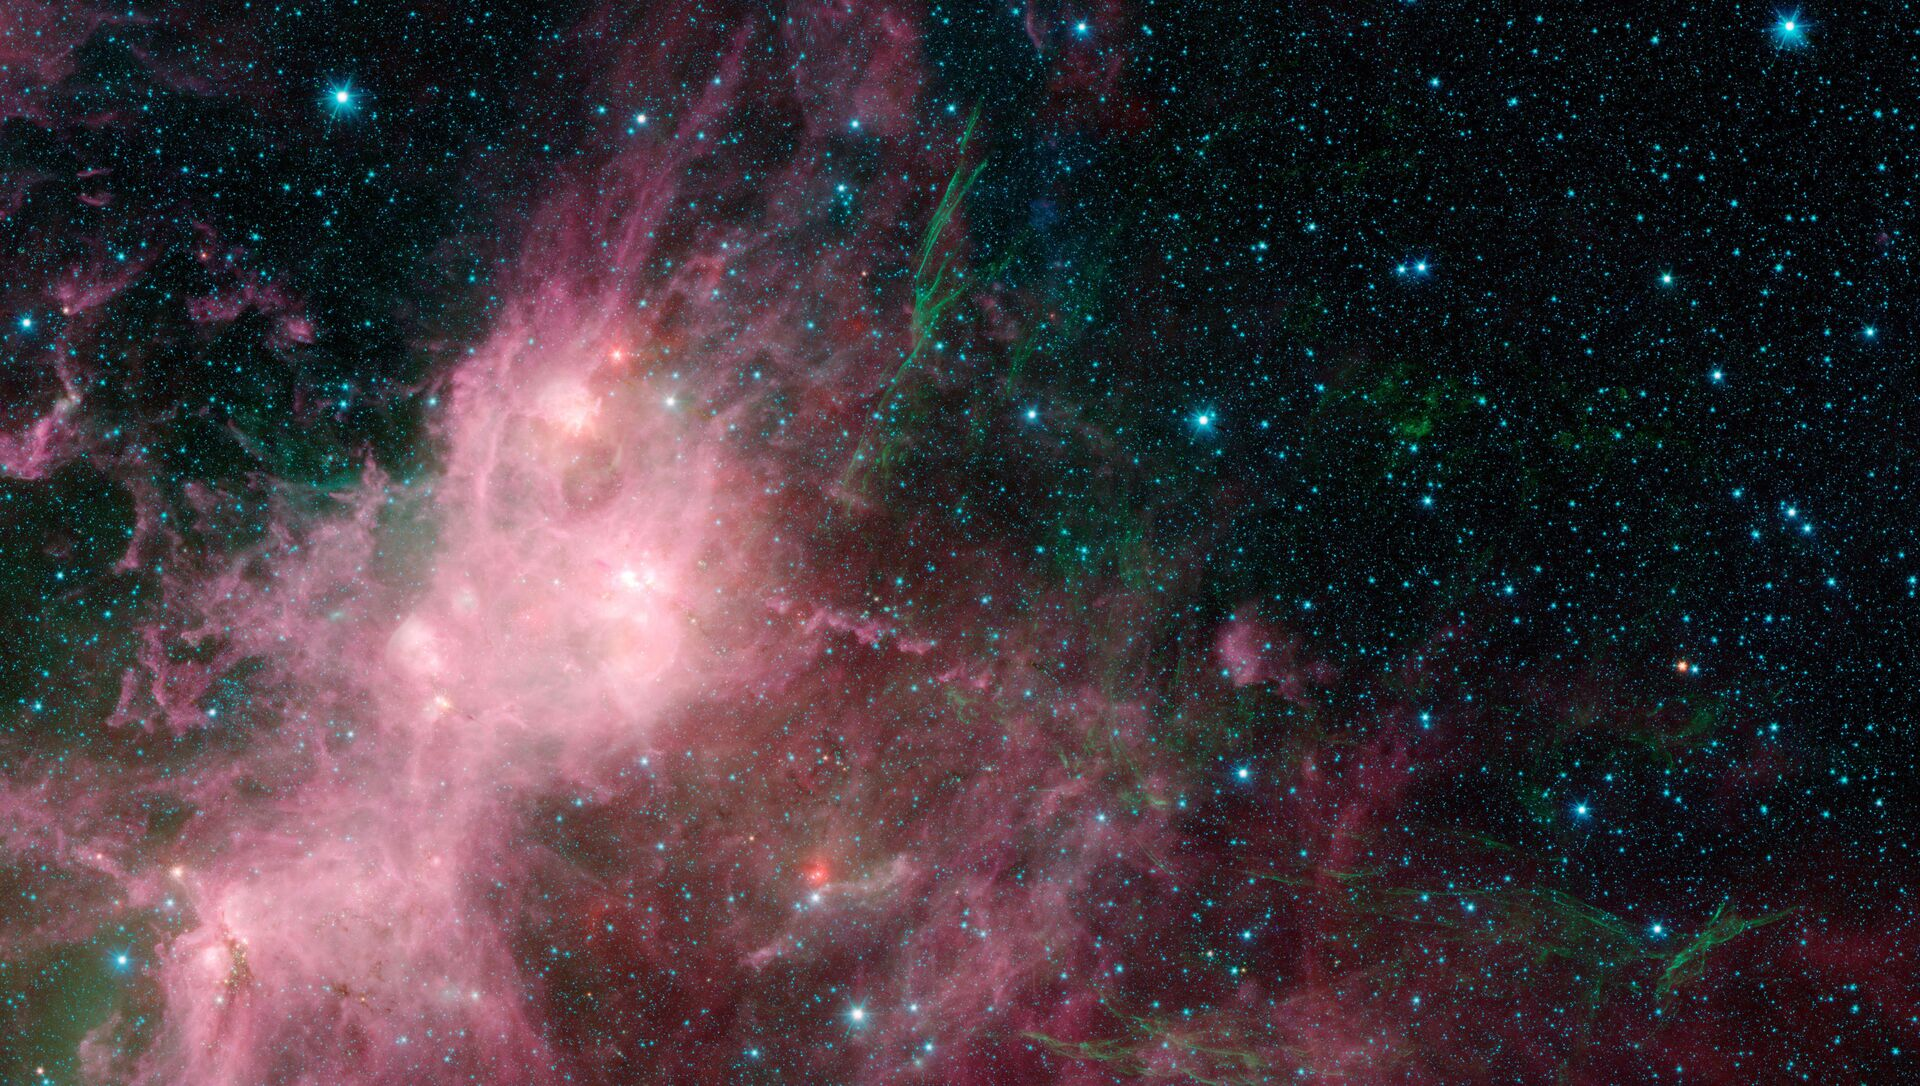 This image made available by NASA shows infrared data from the Spitzer Space Telescope and Wide-field Infrared Survey Explorer (WISE) in an area known as the W3 and W5 star-forming regions within the Milky Way Galaxy - Sputnik International, 1920, 24.02.2021